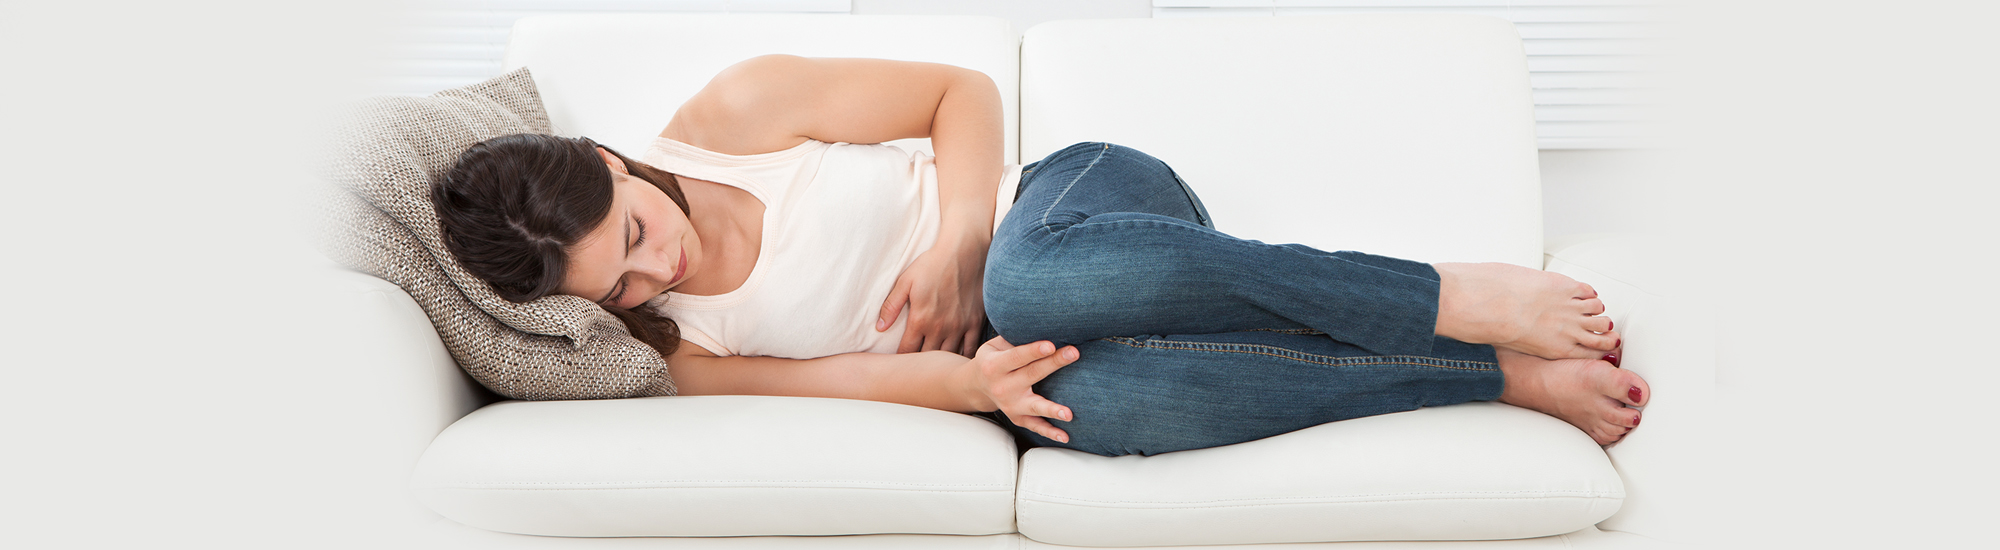 Ayurvedic treatment for Premenstrual syndrome -PMS- References